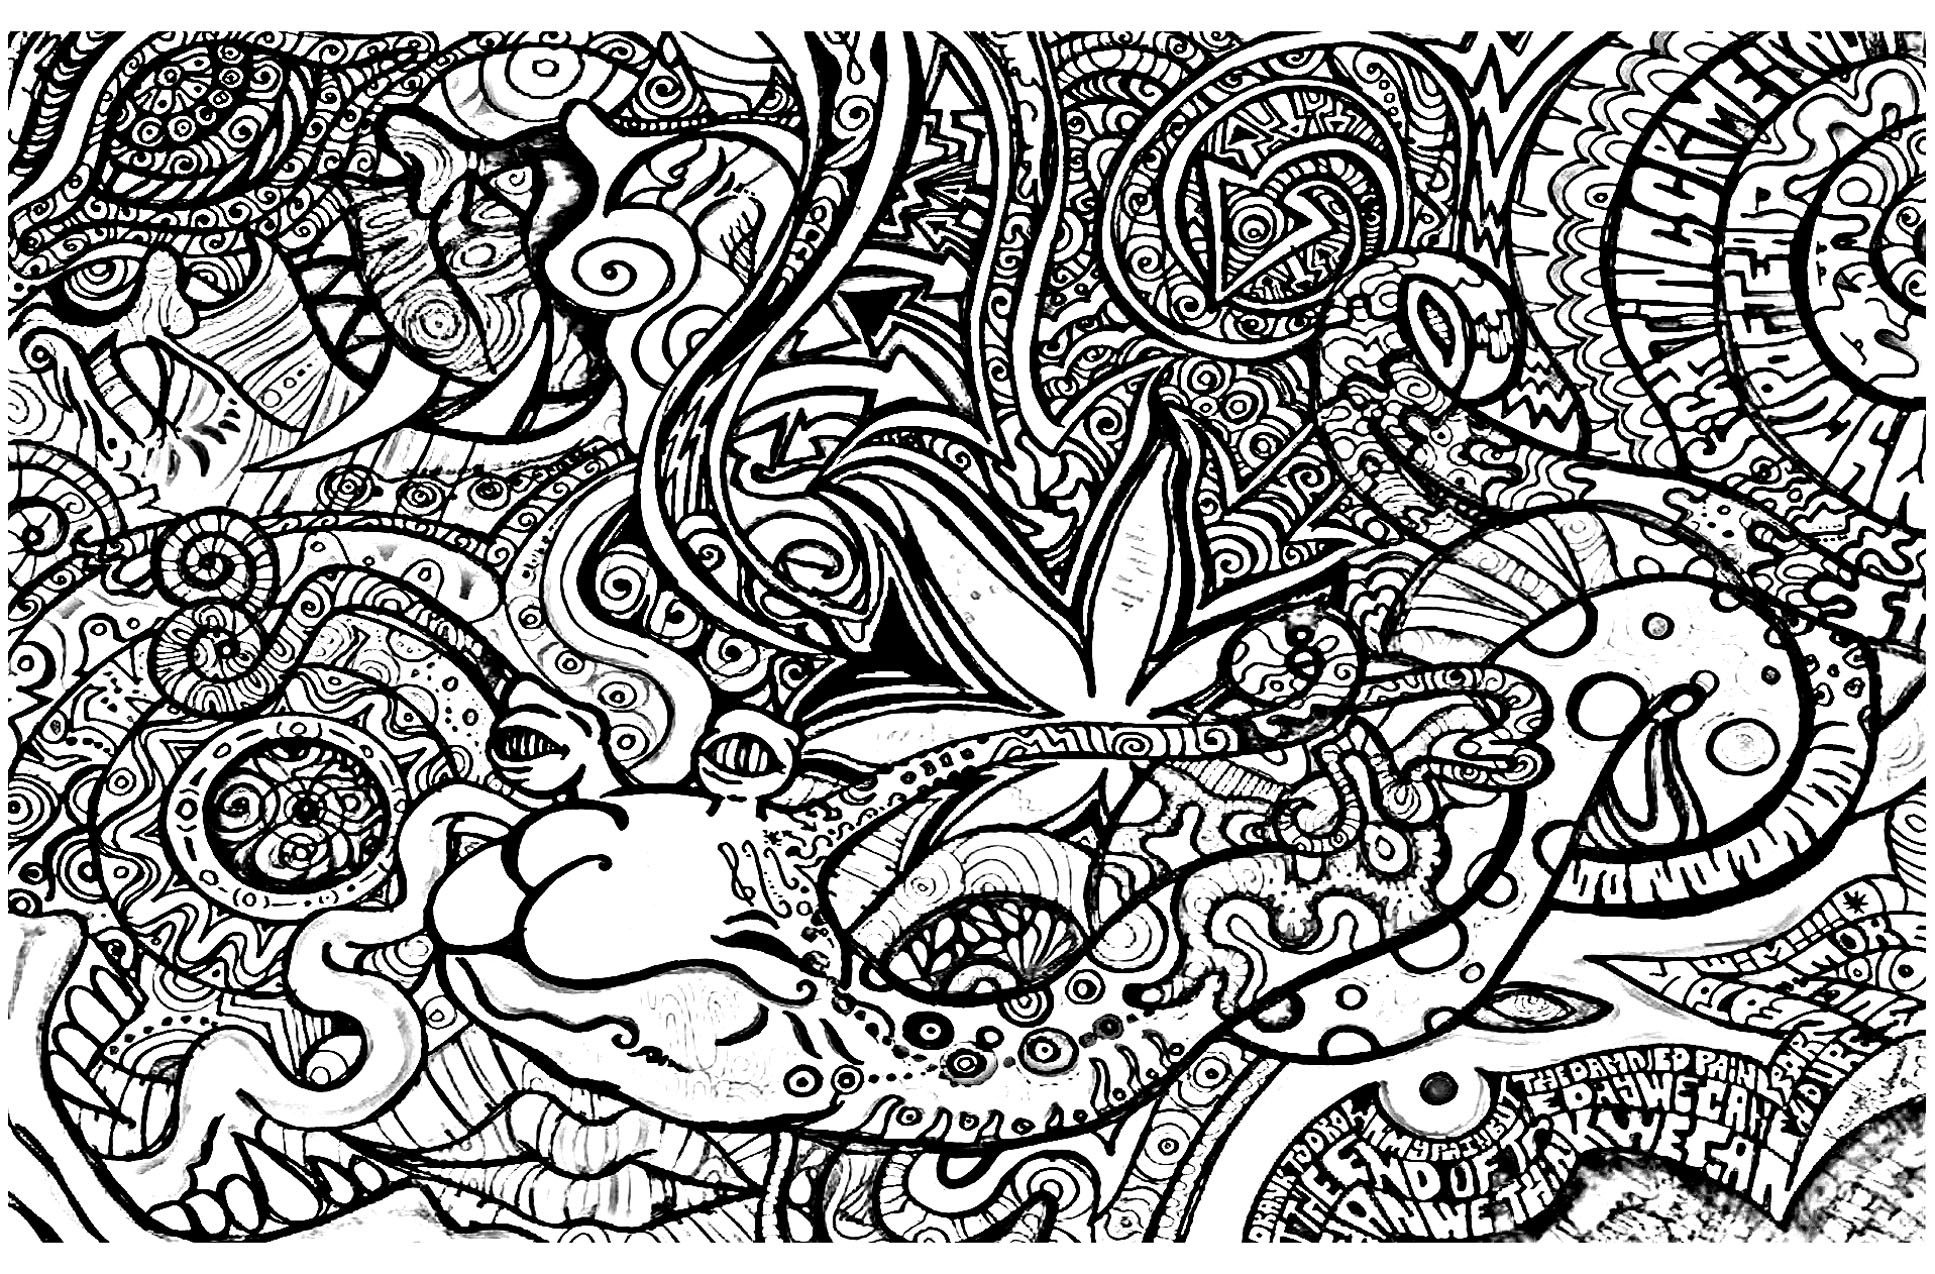 To Print This Free Coloring Page «Coloring-Psychedelic-3», Click On - Free Printable Trippy Coloring Pages